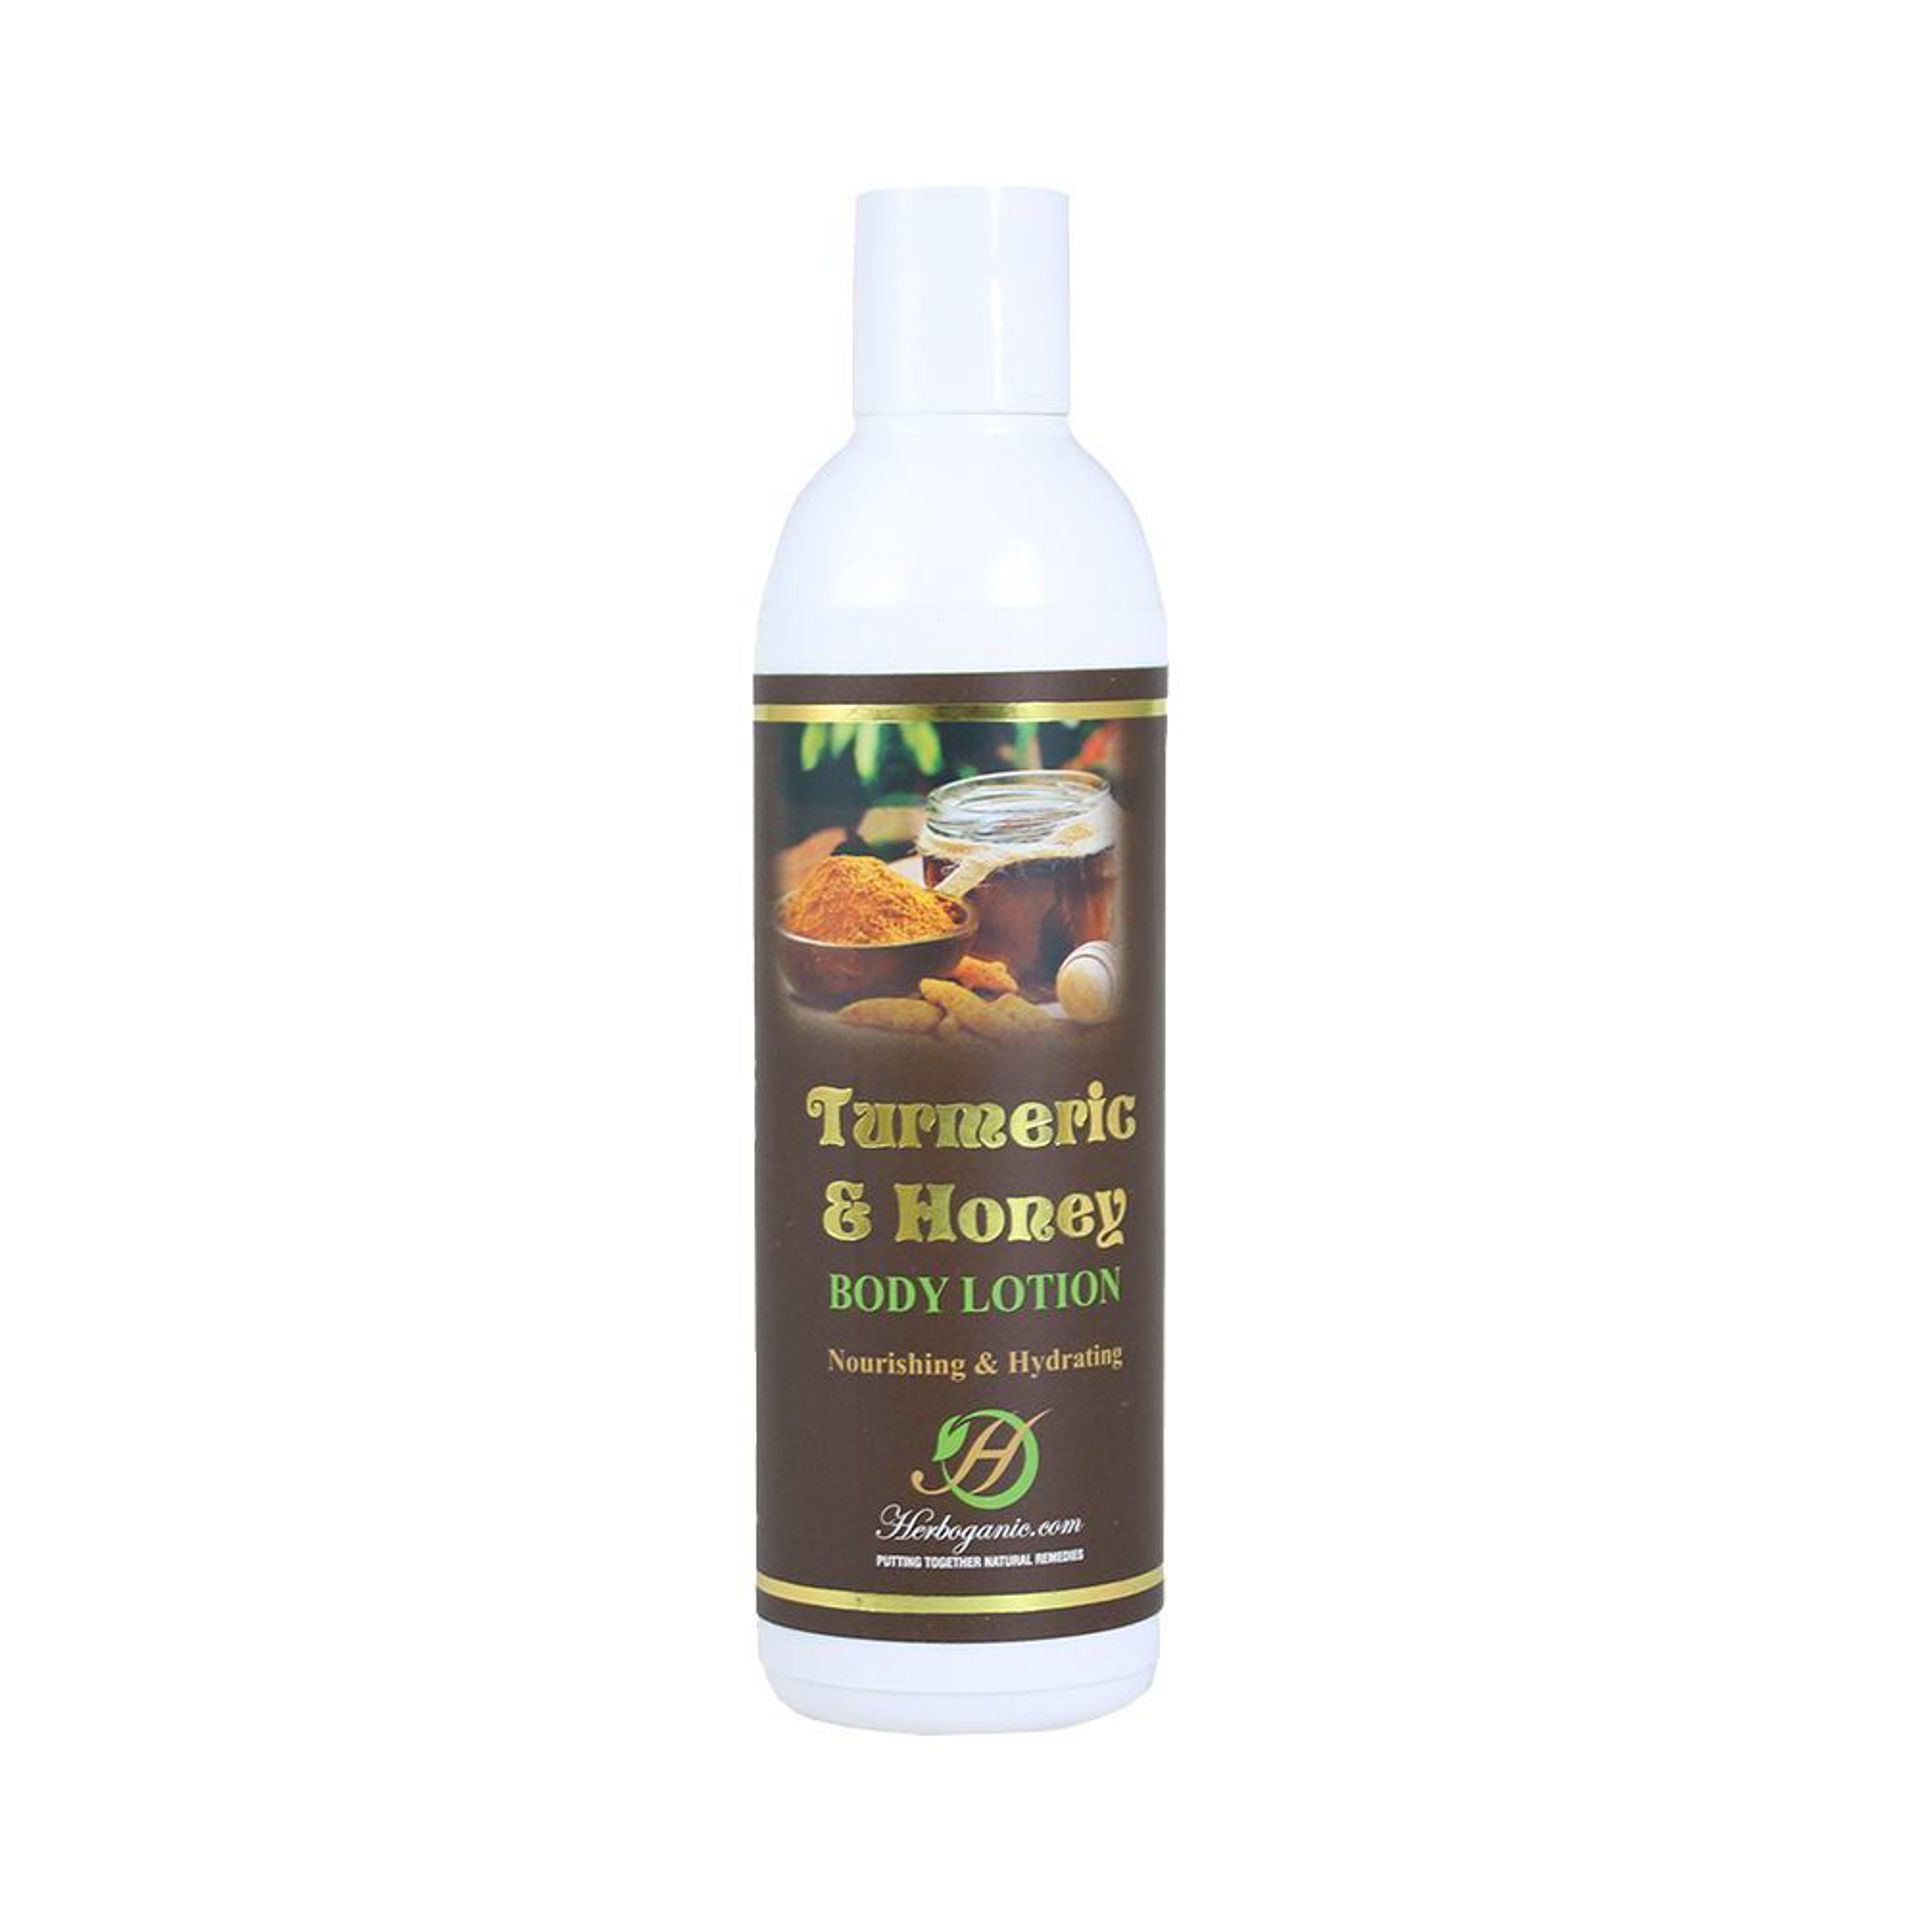 Picture of Turmeric & Honey Body Lotion - 9.3 oz.